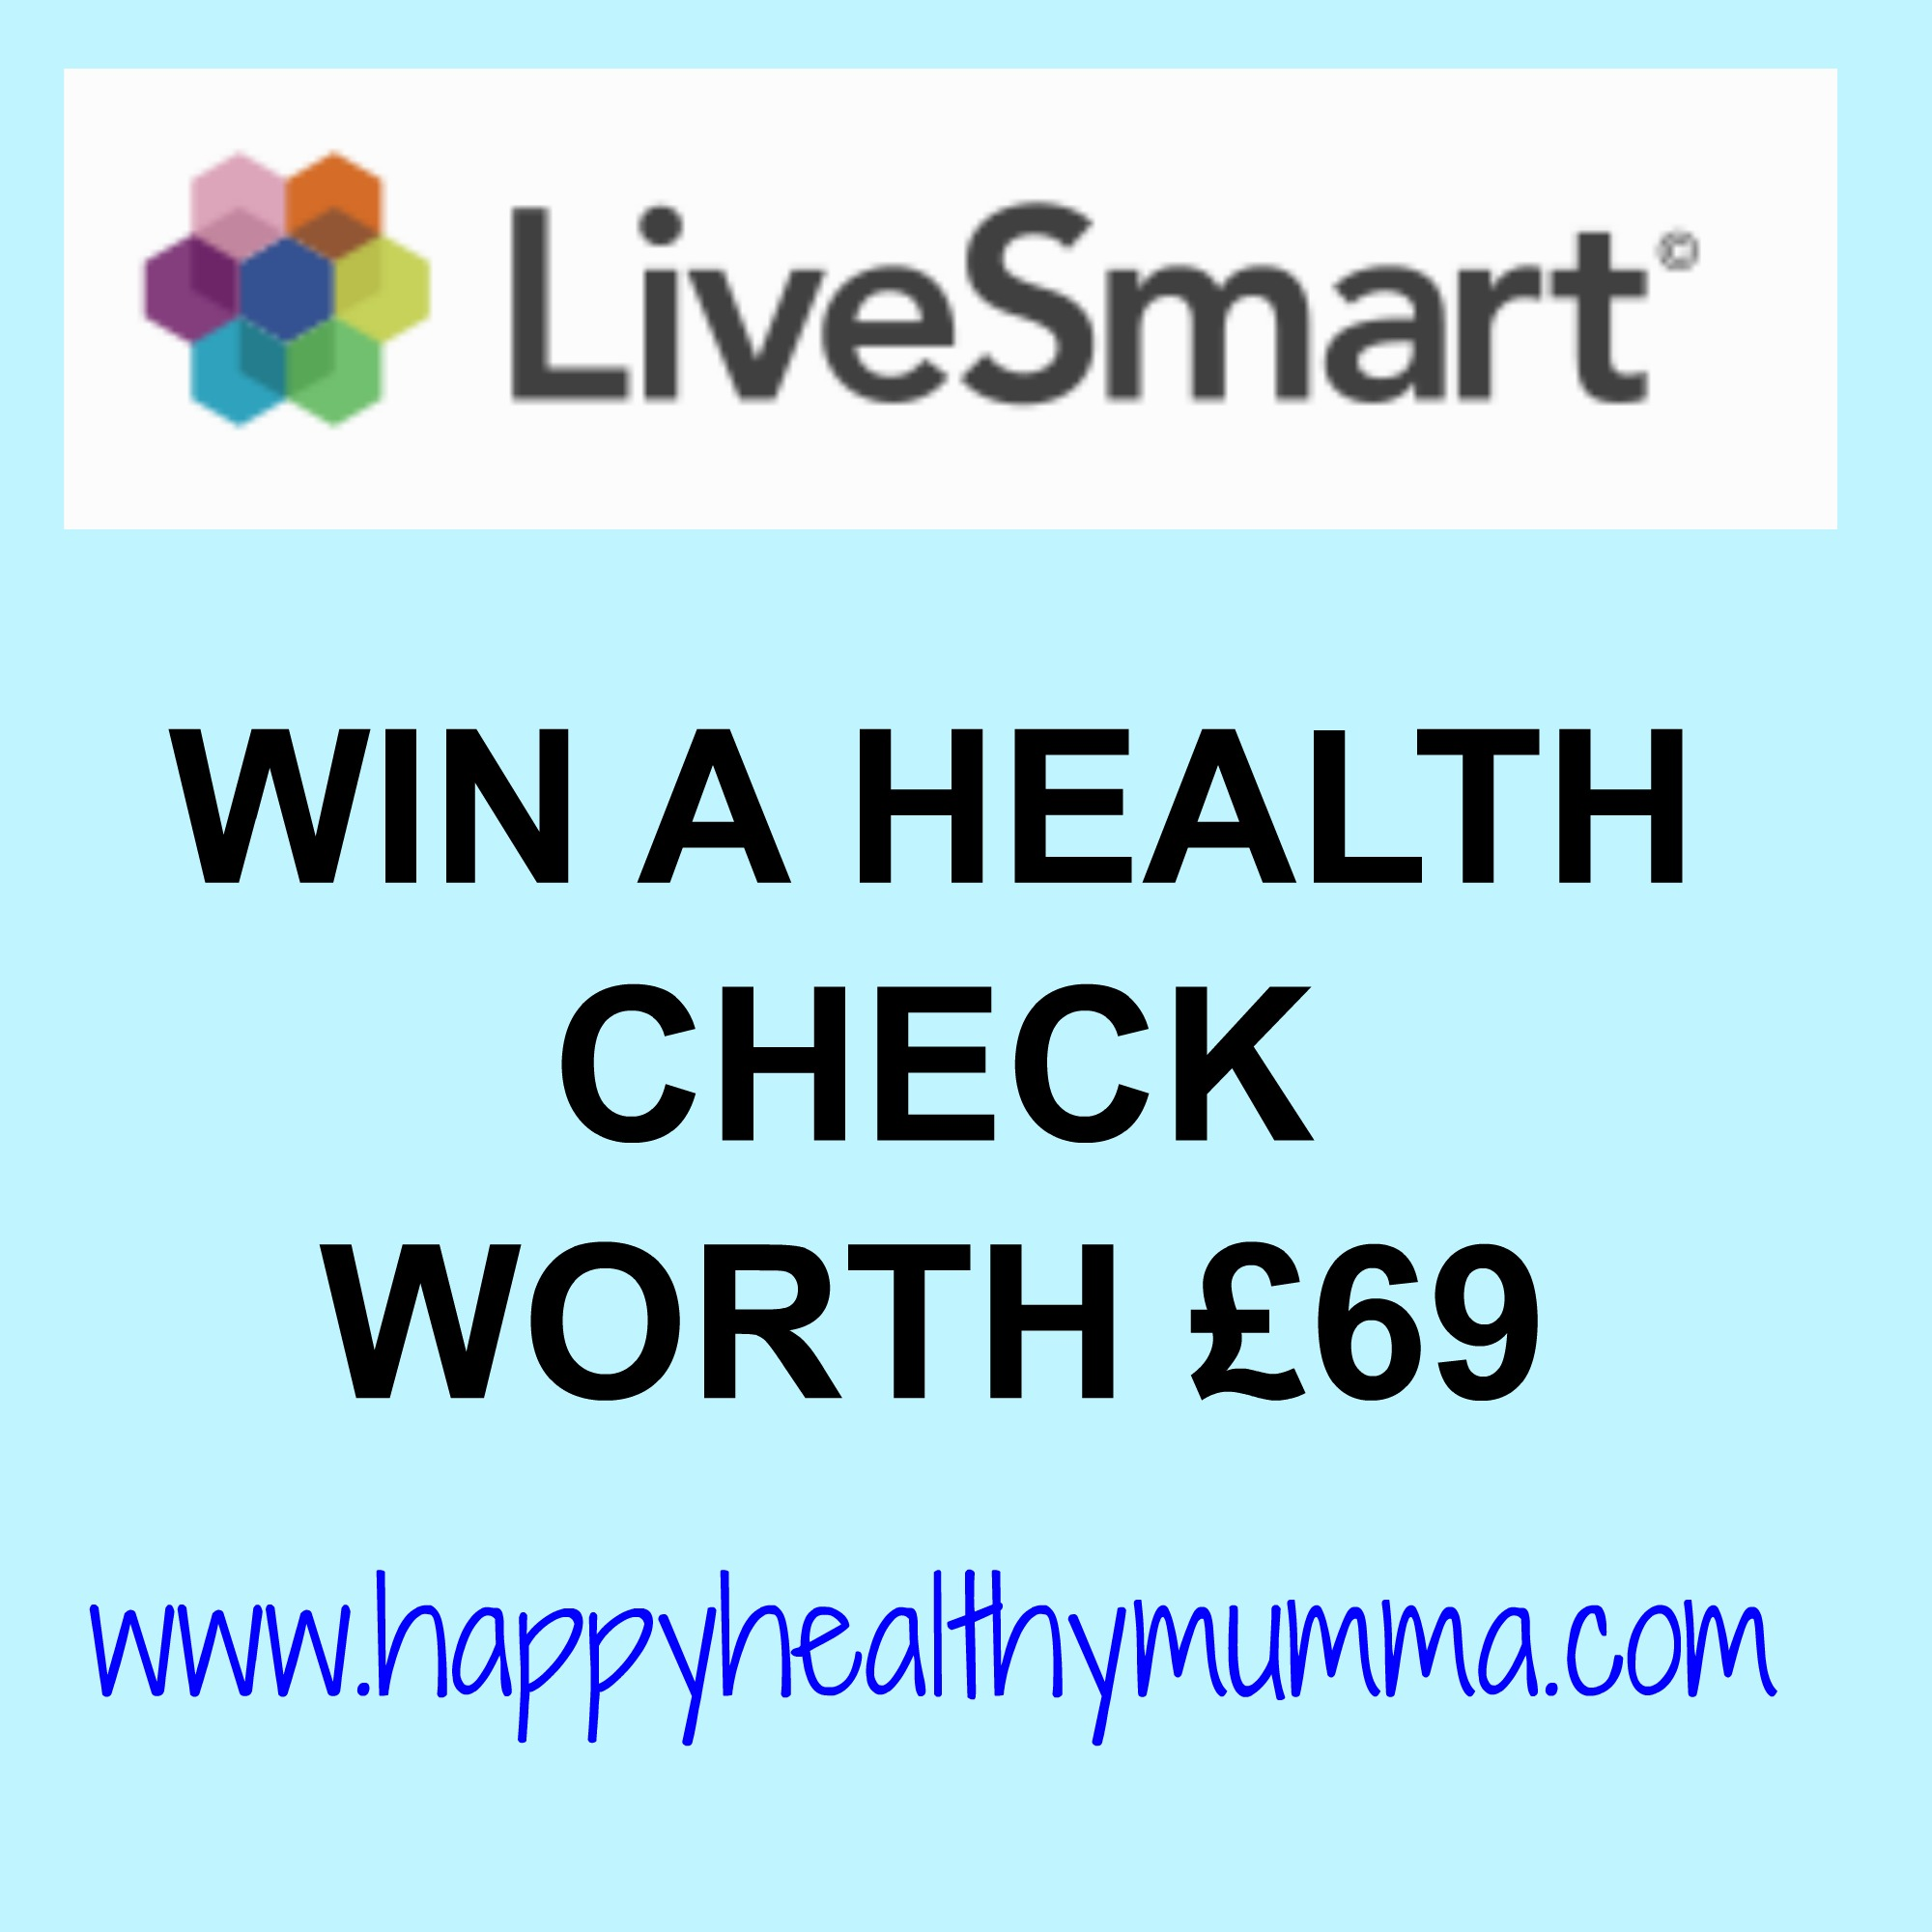 livesmart health check